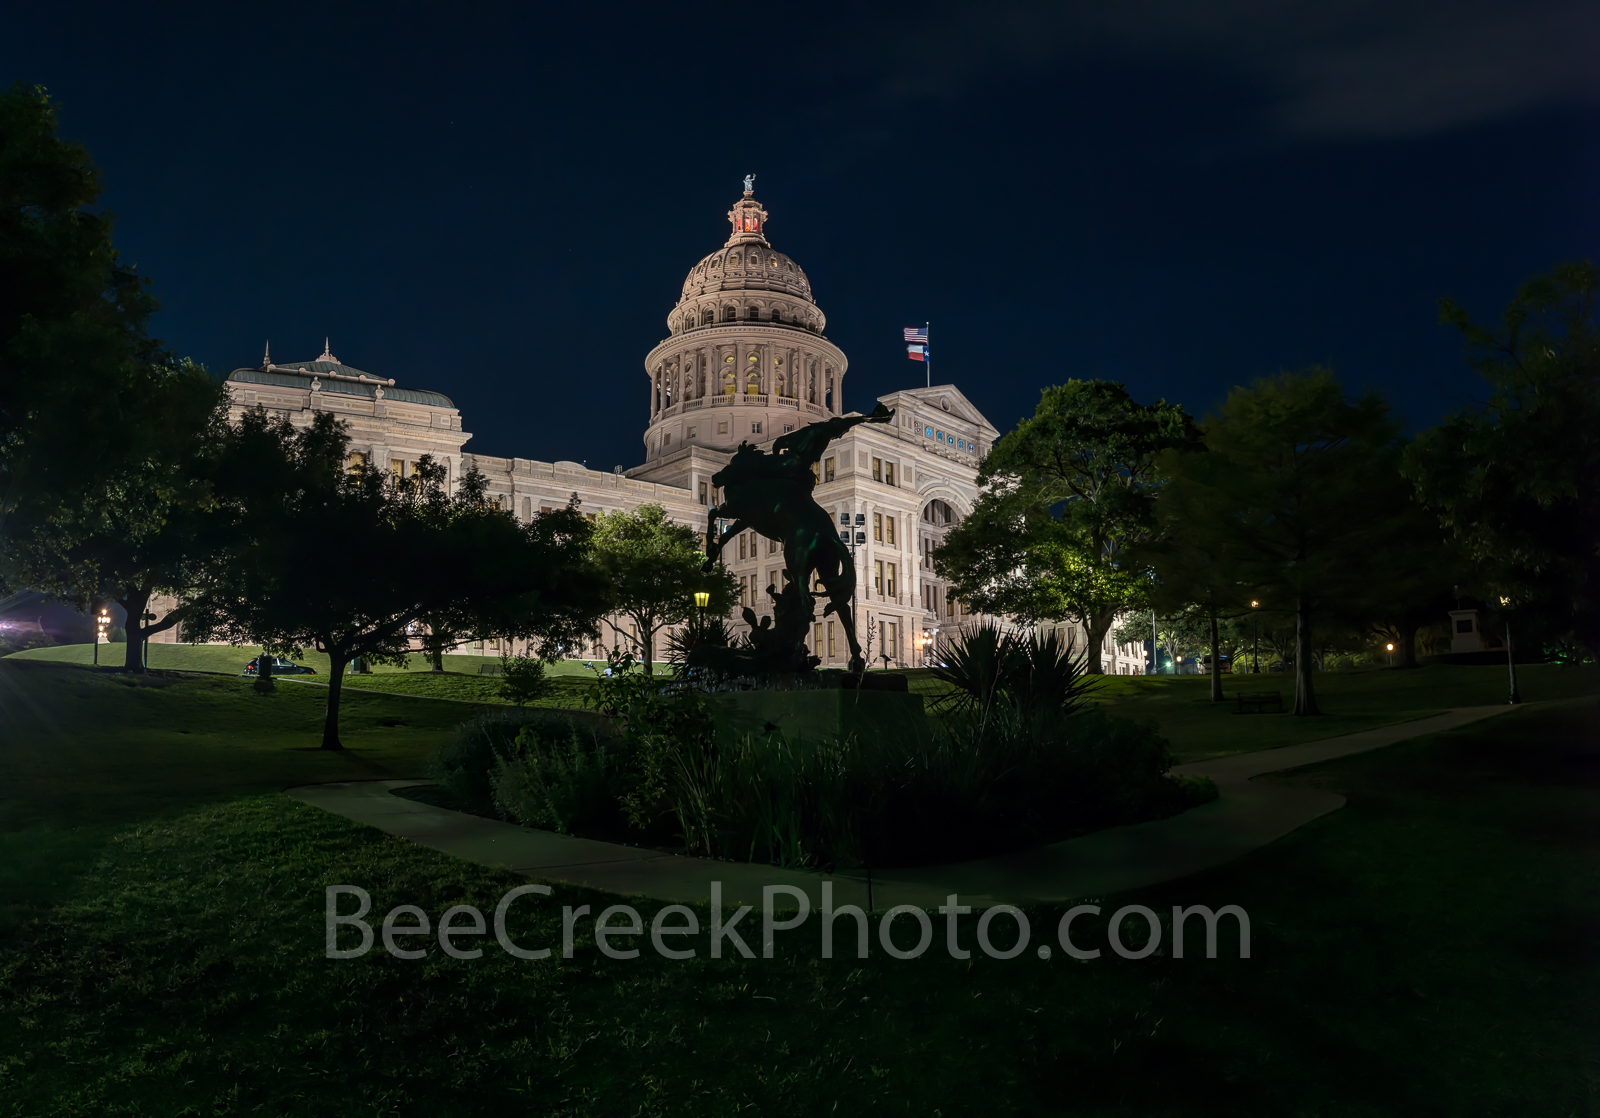 Austin, Texas Capital, Texas Capital, cowboy, horse, rider, pano, panorama, night,, photo